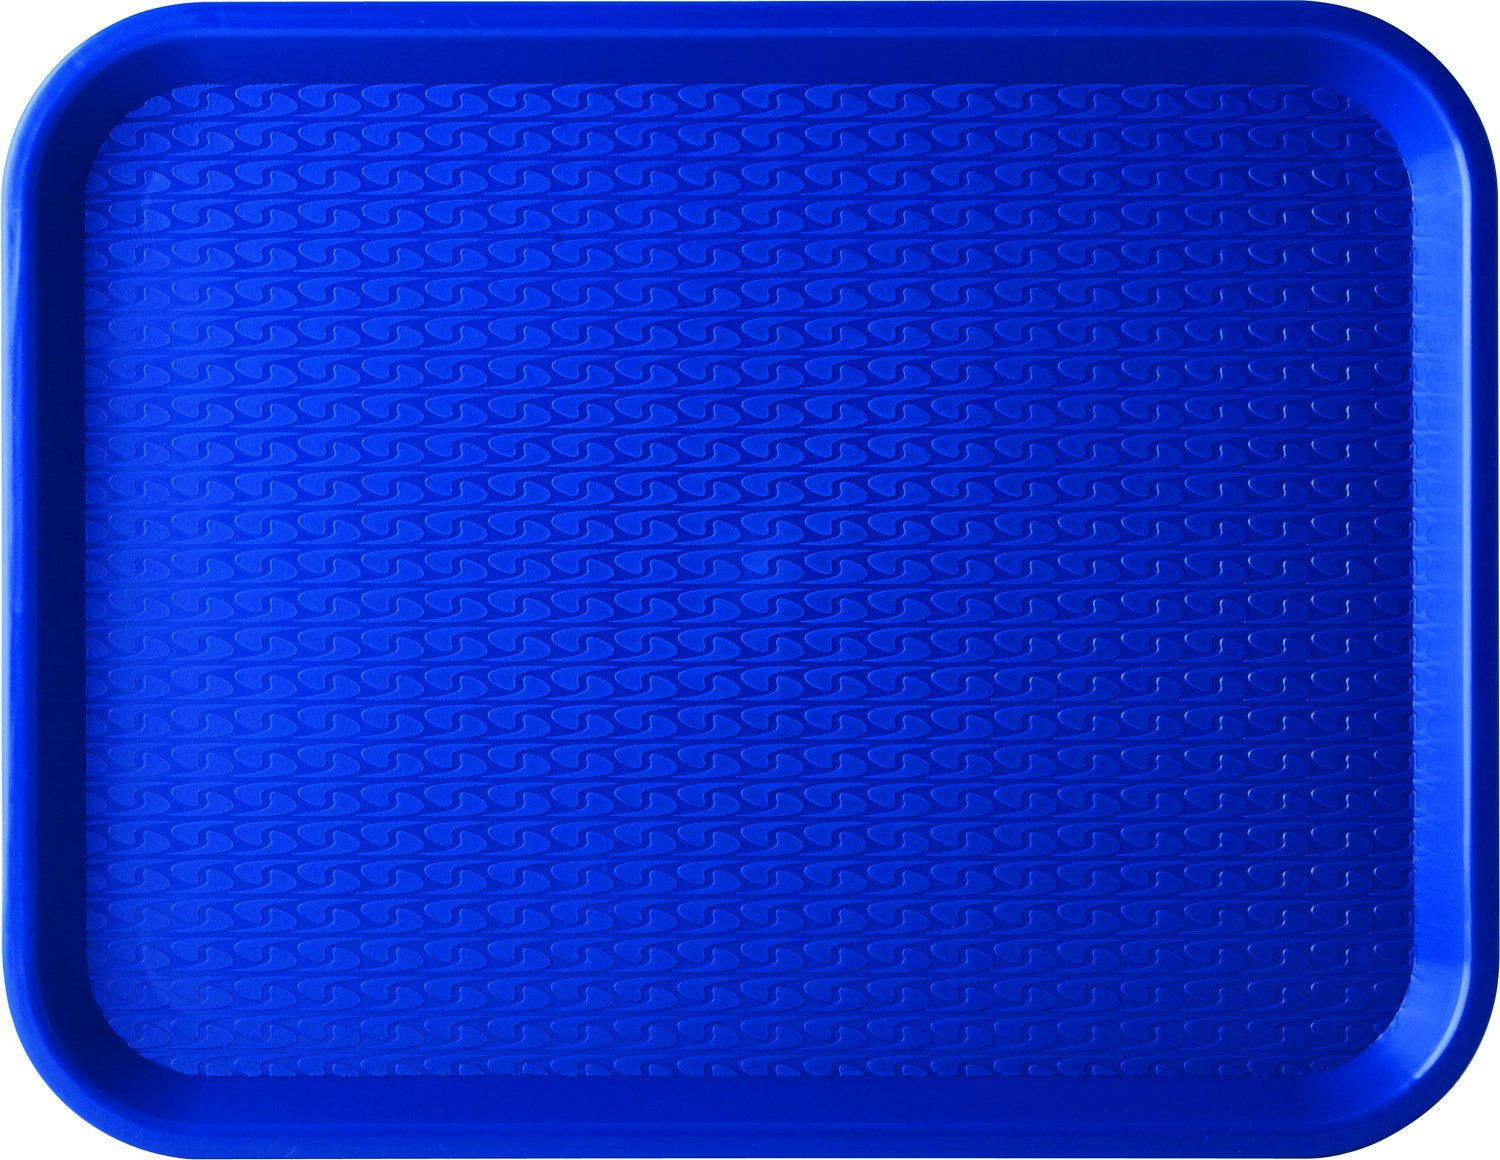 Carlisle CT141814 Café Standard Cafeteria / Fast Food Tray, 14'' x 18'', Blue (Pack of 12) by Carlisle (Image #1)